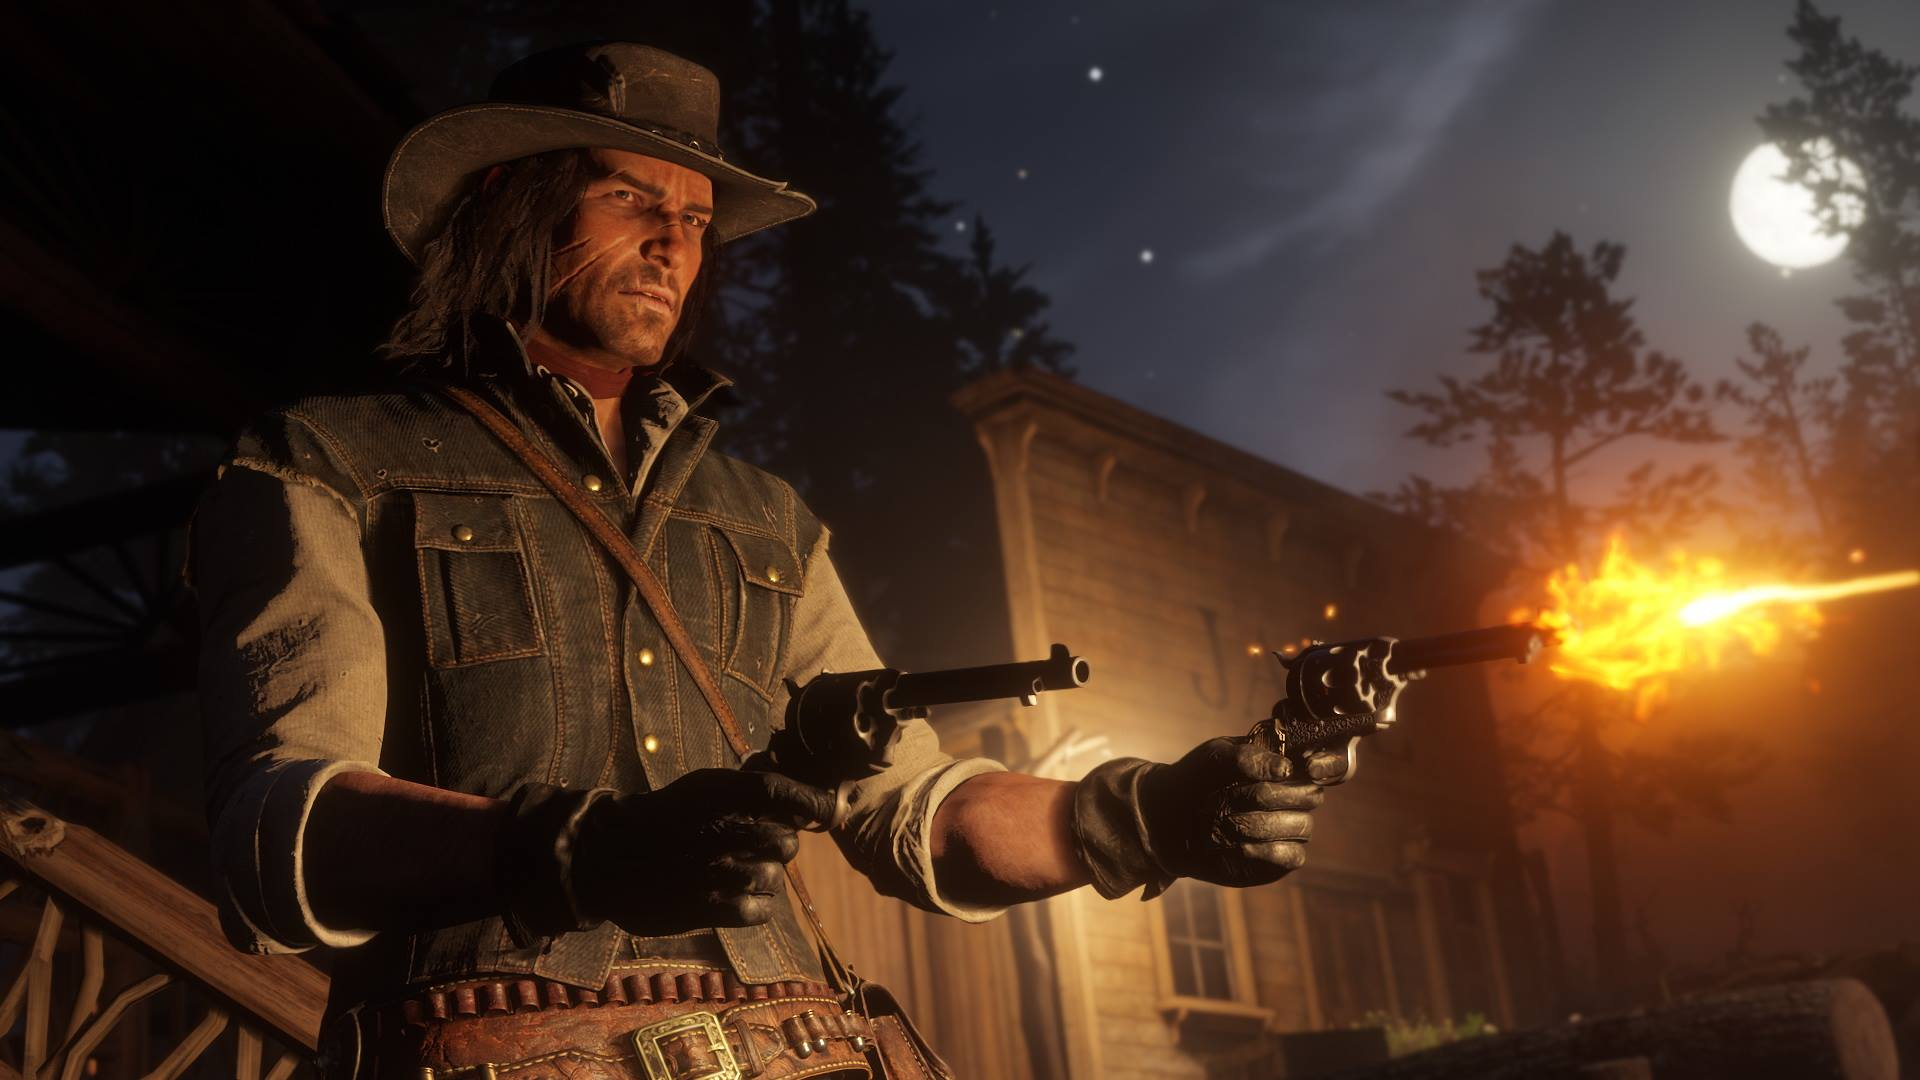 Rockstar's Red Dead Redemption 2 is going to sell like hotcakes